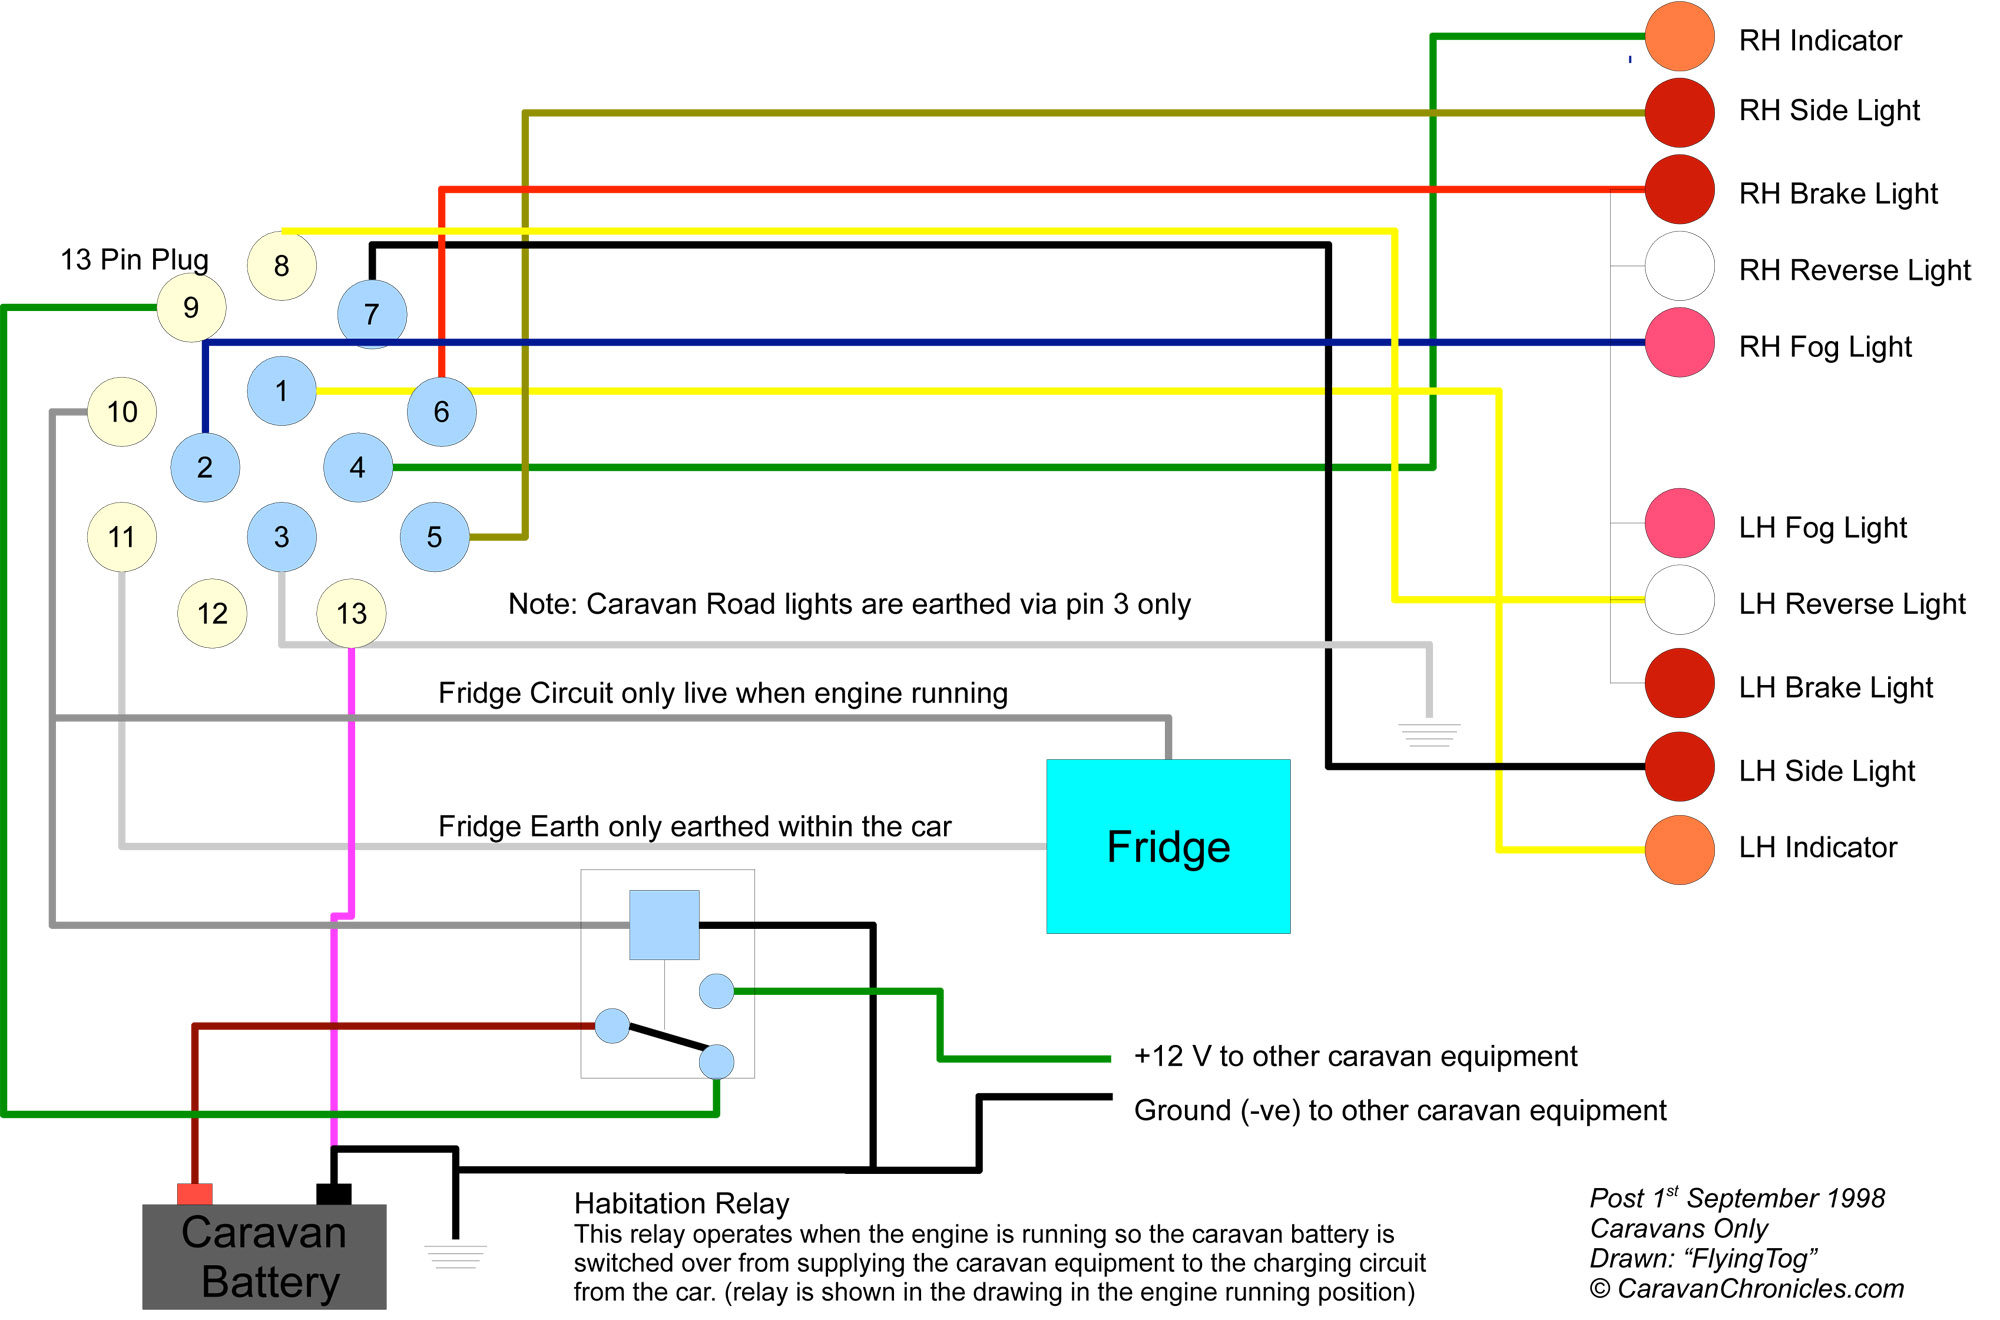 caravan wiring 13 pin understanding caravan and tow car electrics caravan chronicles 7 wire diagram at gsmx.co